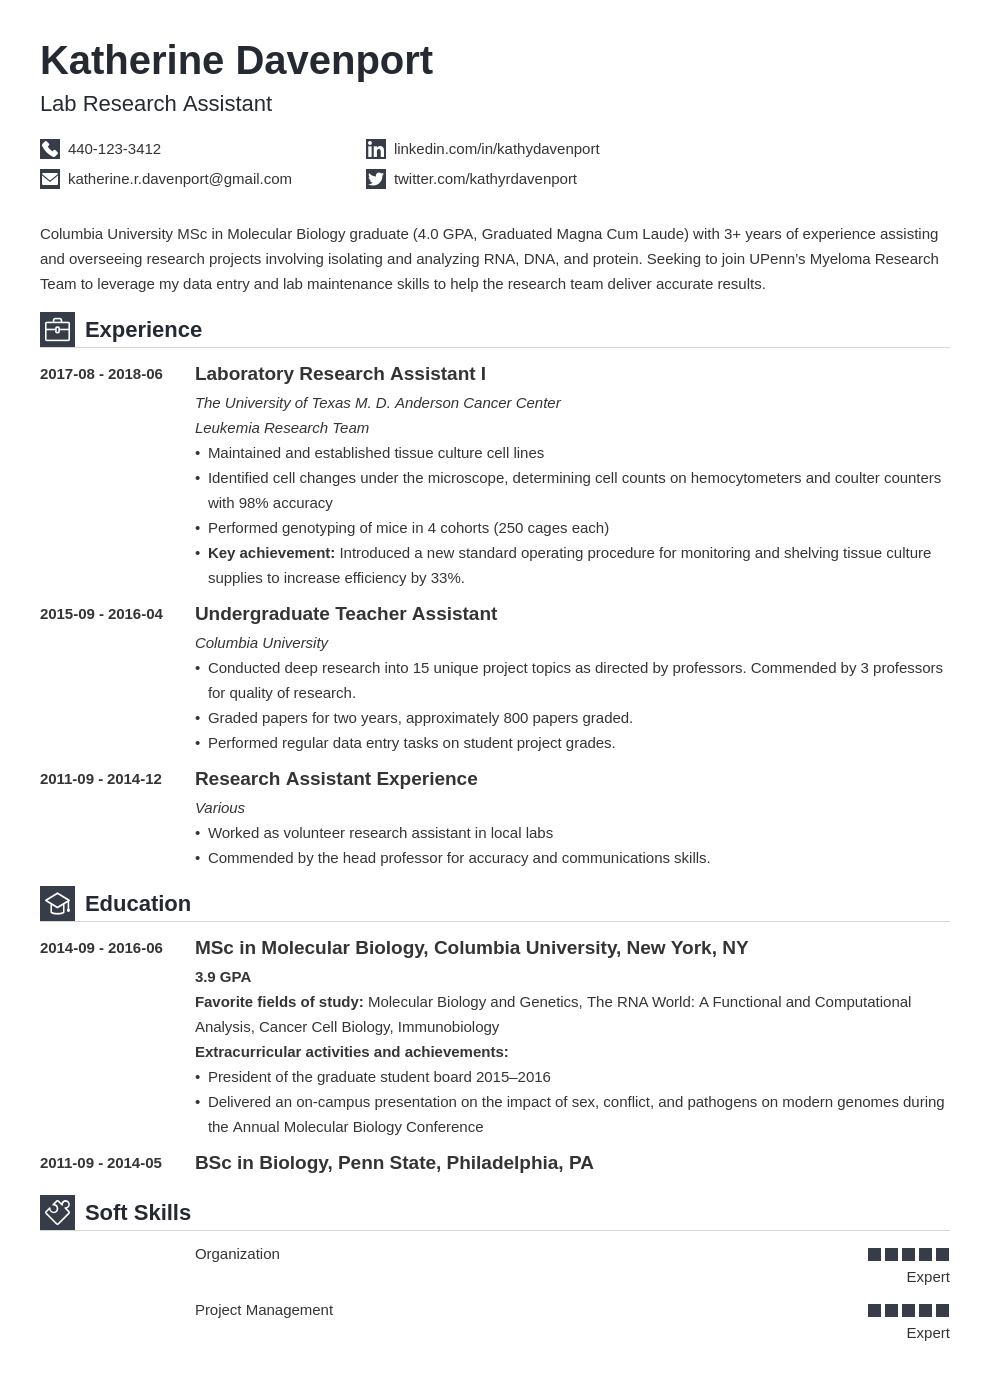 Research Assistant Resume Example Template Iconic Research Assistant Resume Examples Job Resume Examples